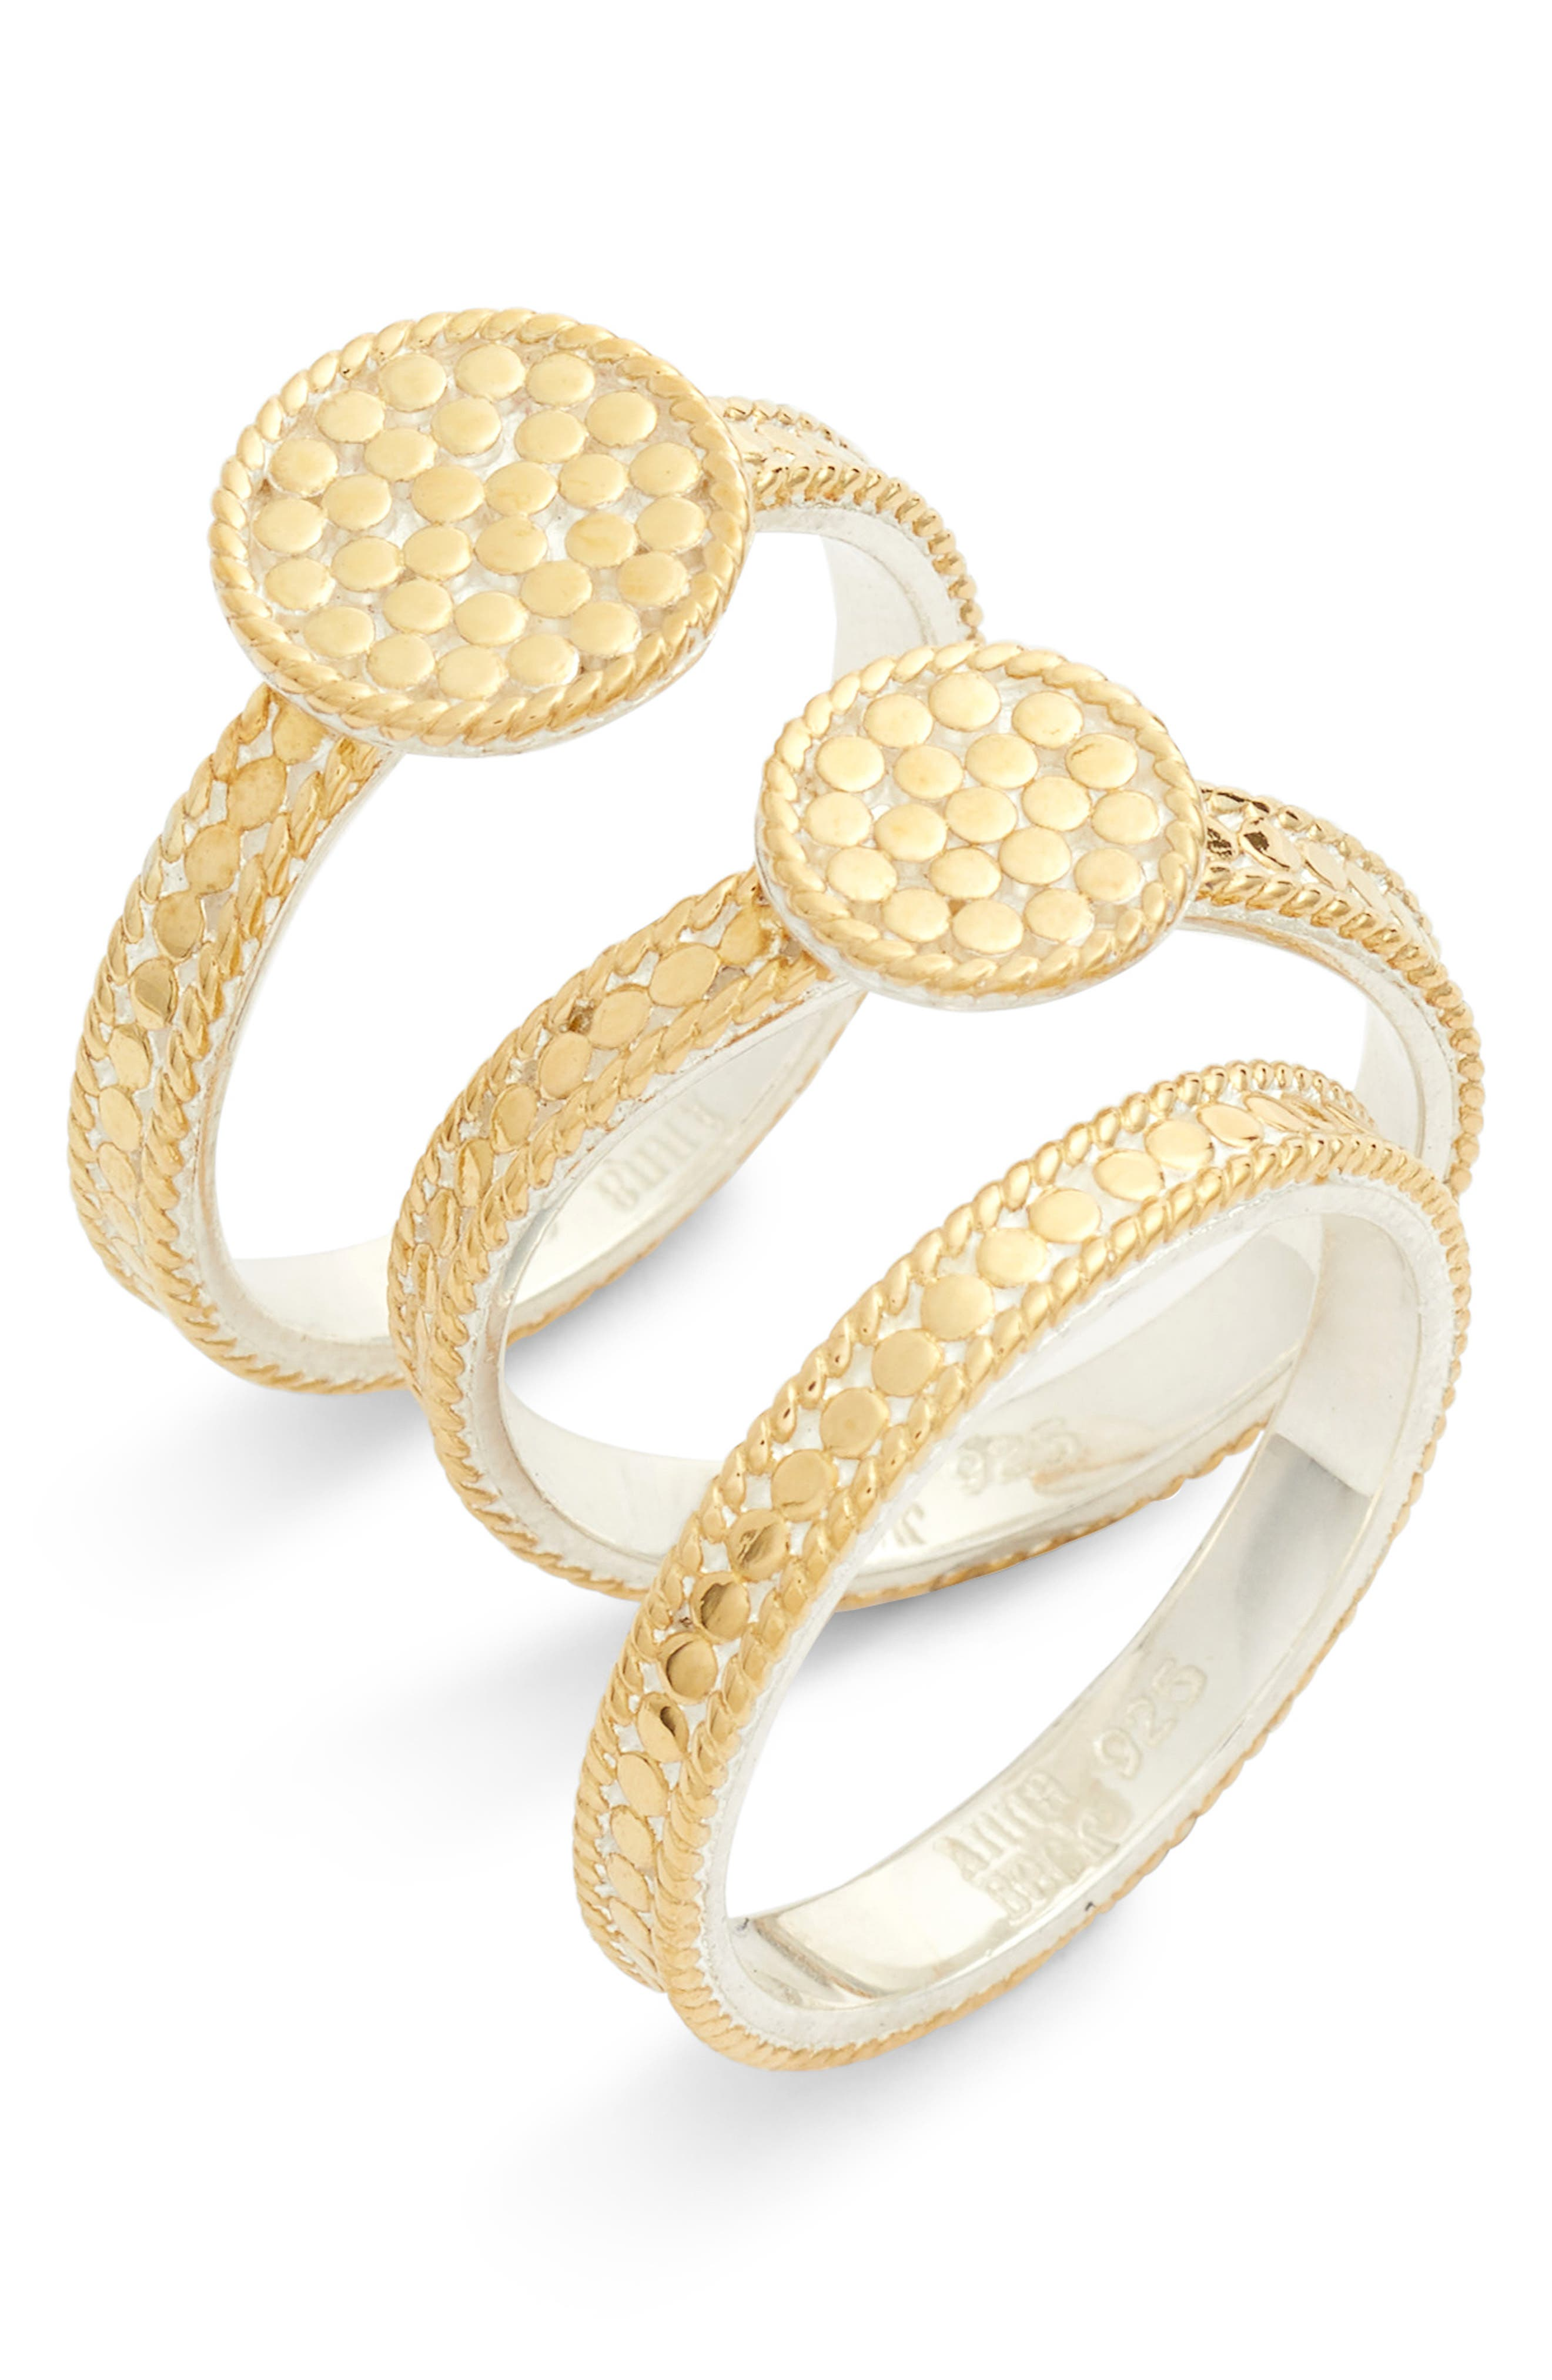 Gold Plate Disc Set of 3 Stacking Rings,                             Main thumbnail 1, color,                             Gold